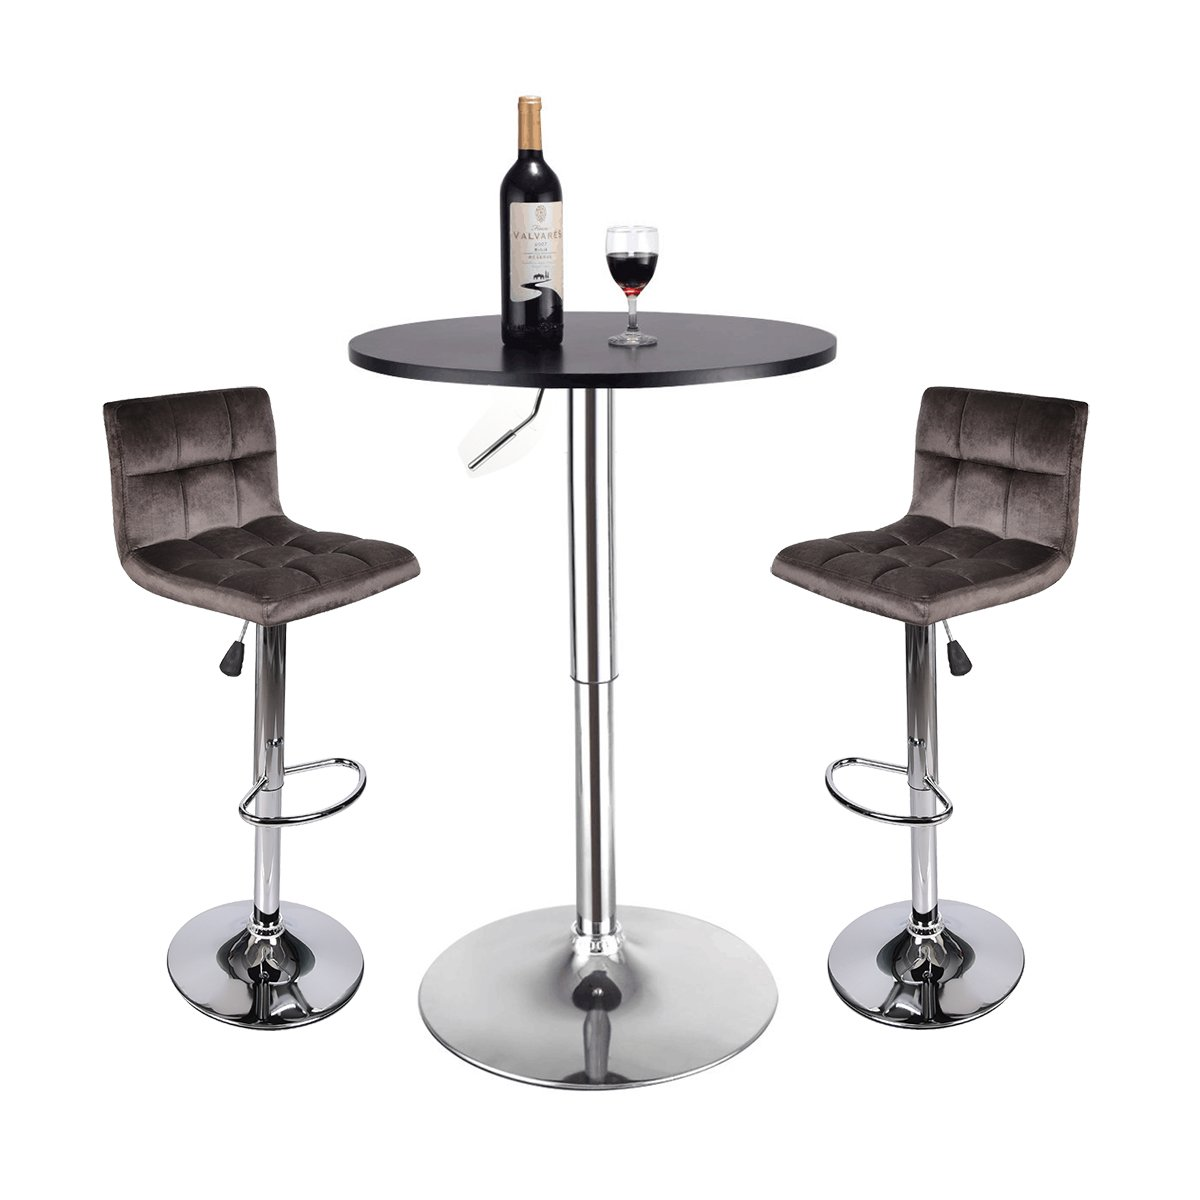 35 Inches Height Pub Table Round Black MDF Top, with 2 Dark Brown Contemporary Chrome Air Lift Barstool Flannel Padded Adjustable Swivel Stools